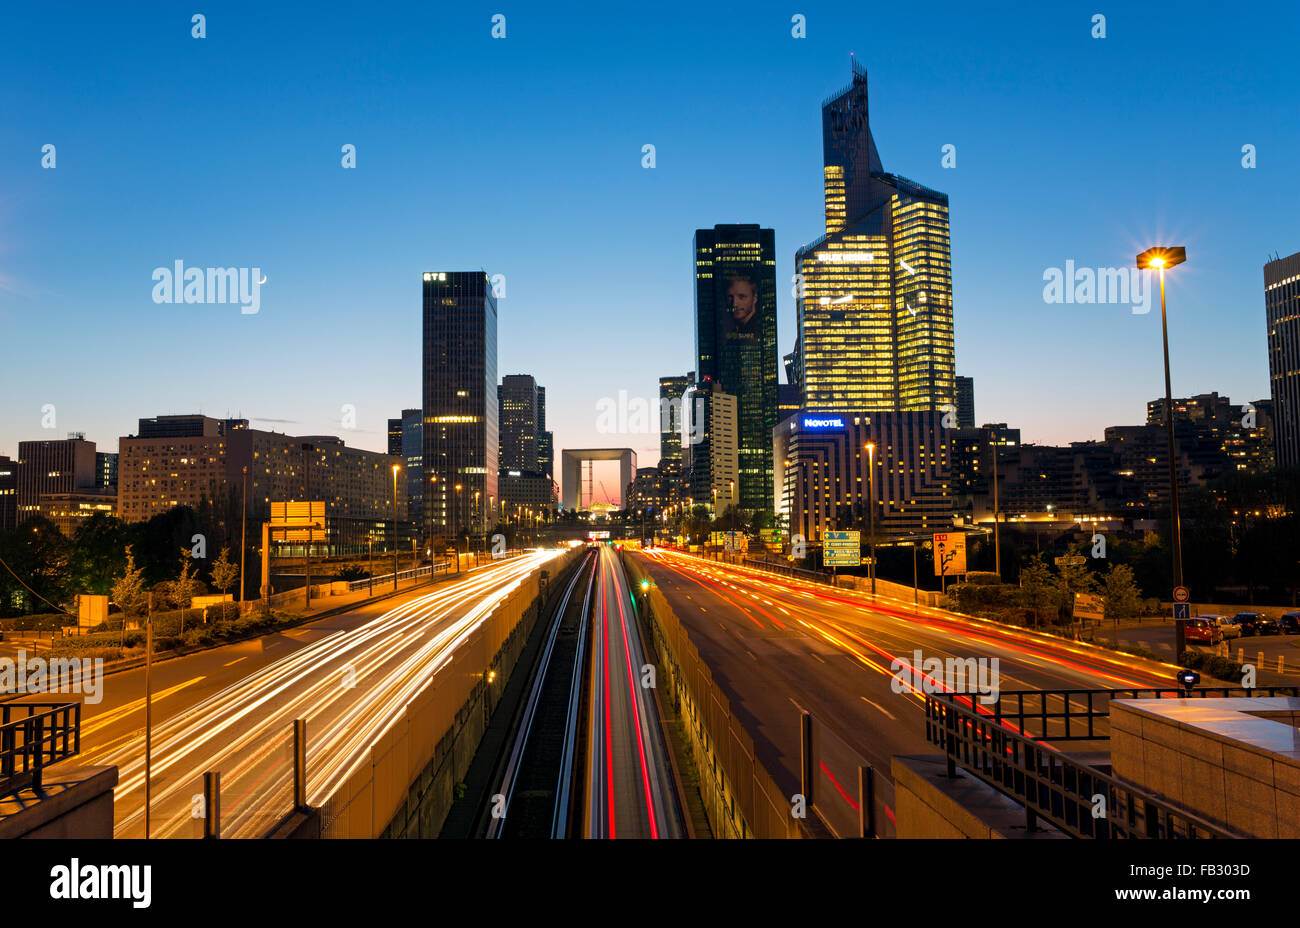 Paris road at night leading towards La Grande Arche and modern office buildings at La Defense, Paris, France - Stock Image